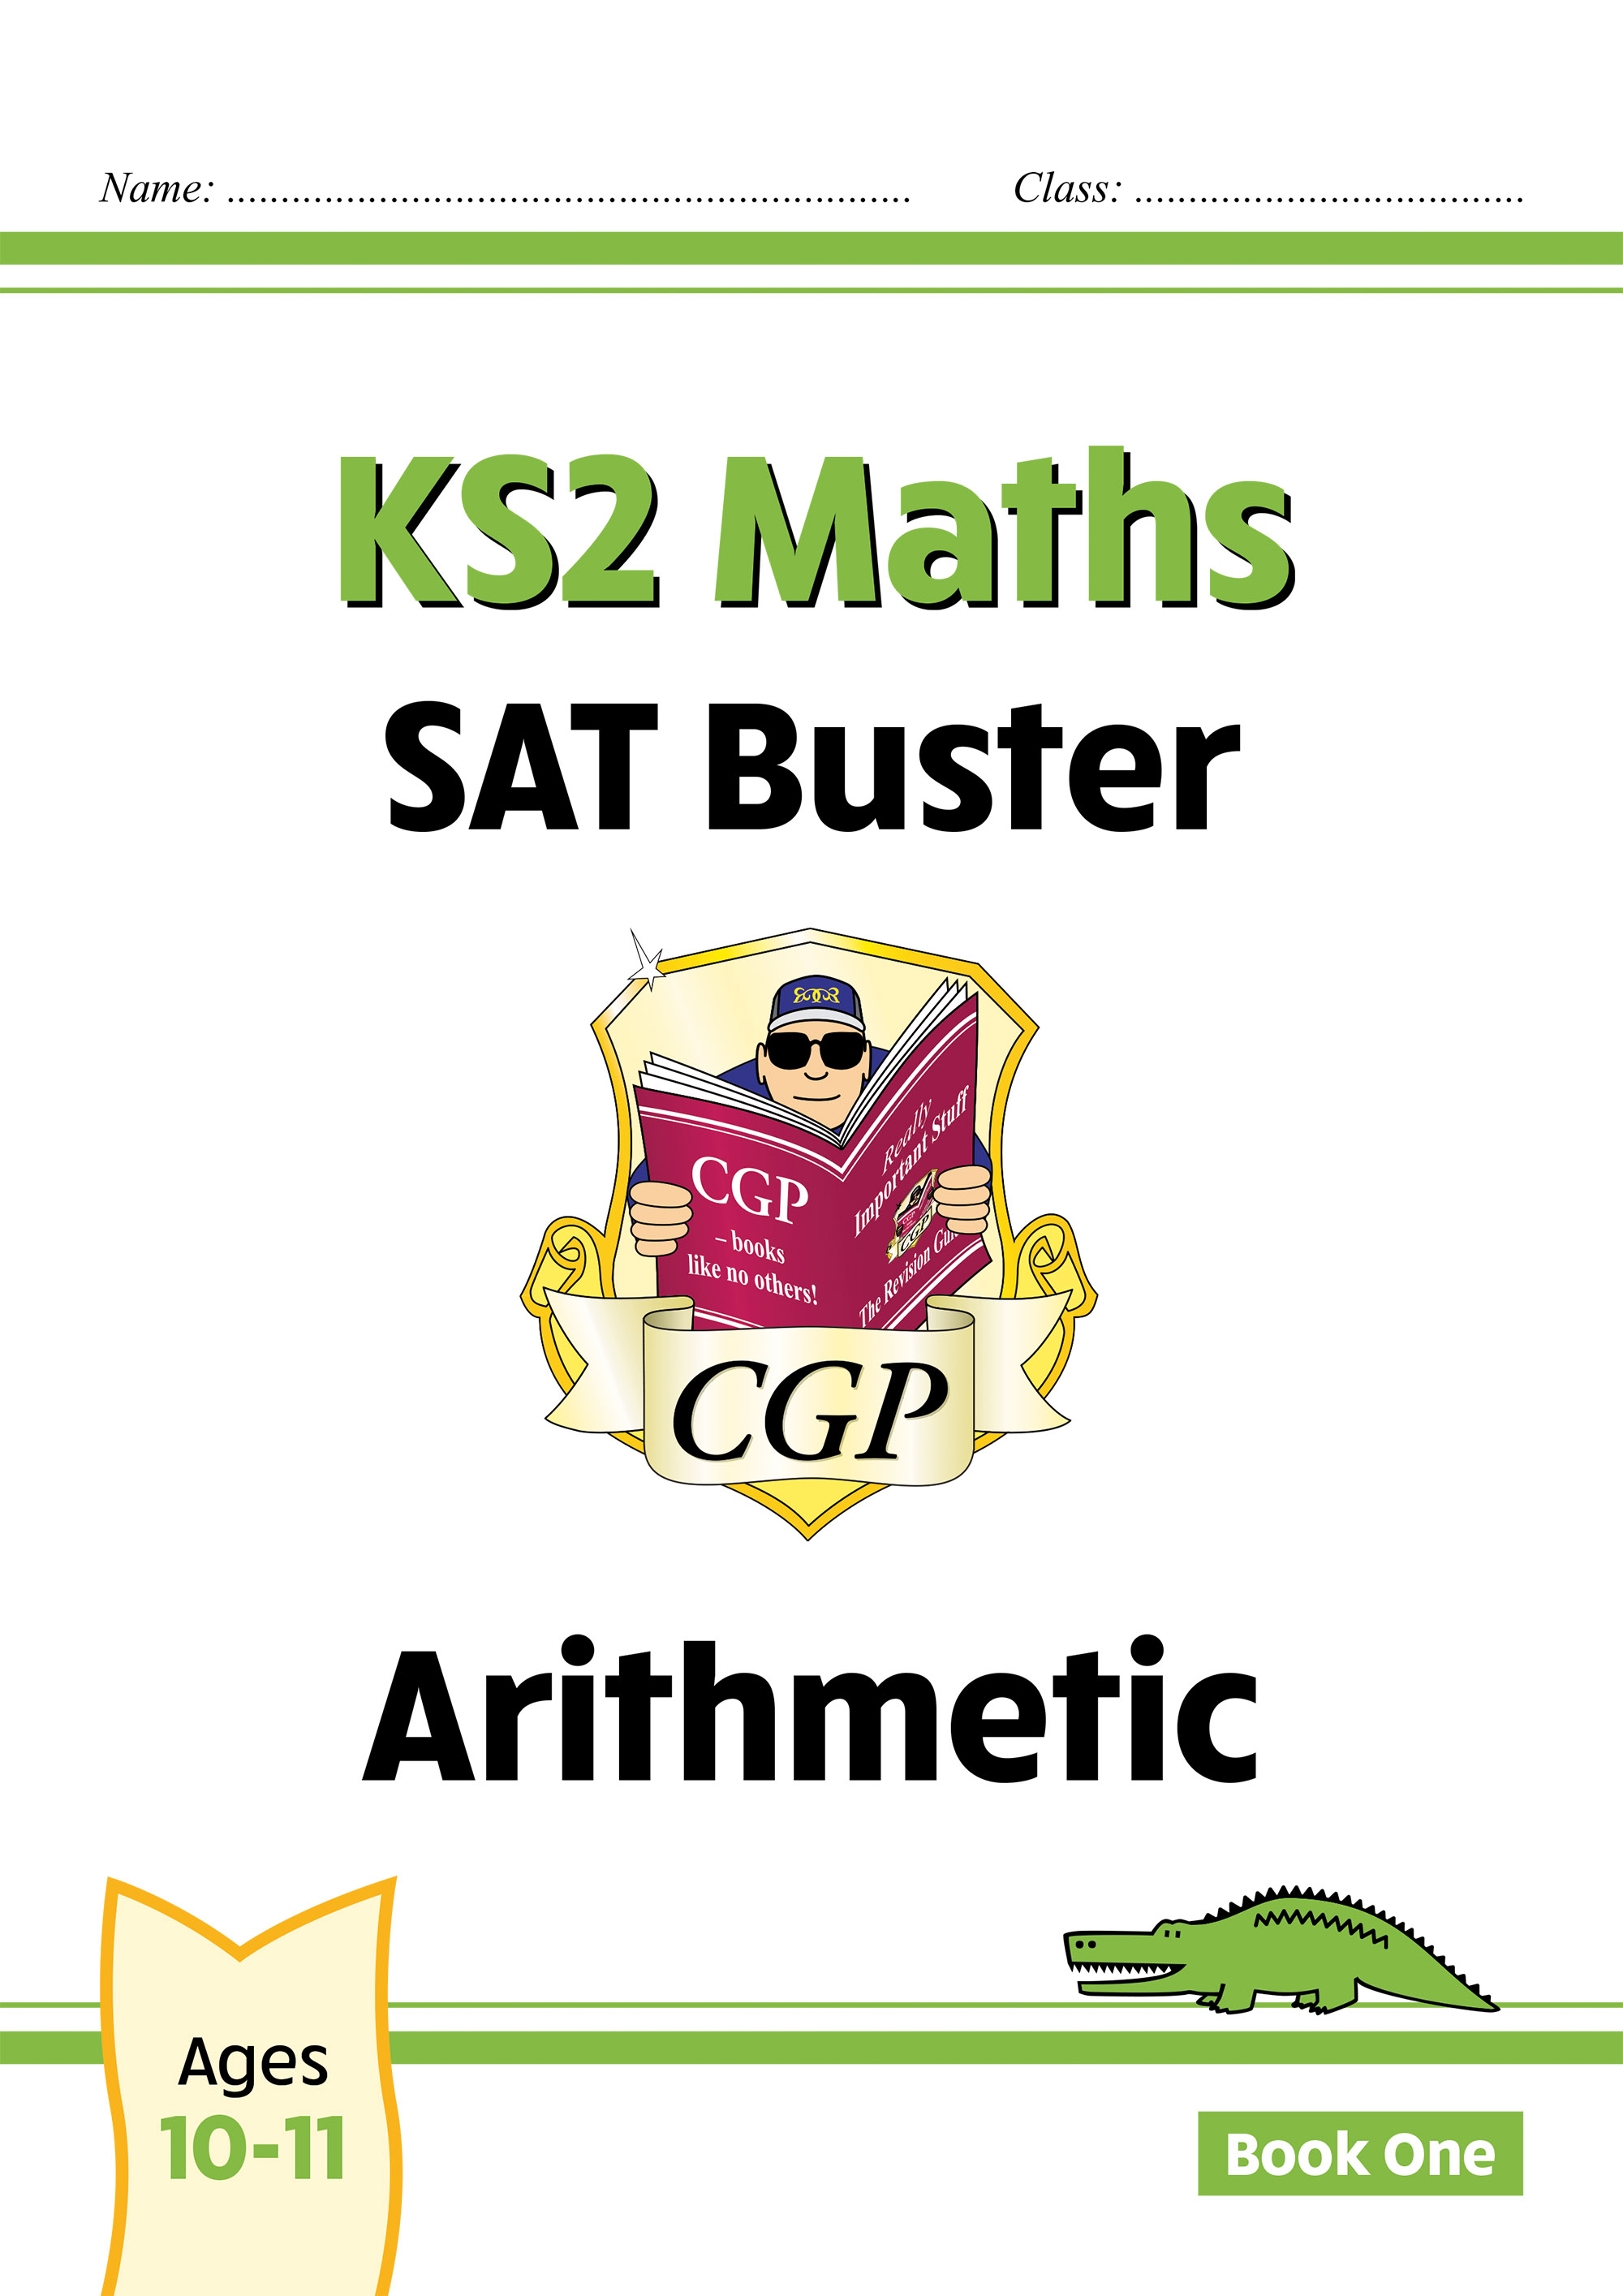 M6ARI24D - New KS2 Maths SAT Buster: Arithmetic - Book 1 - Online Edition